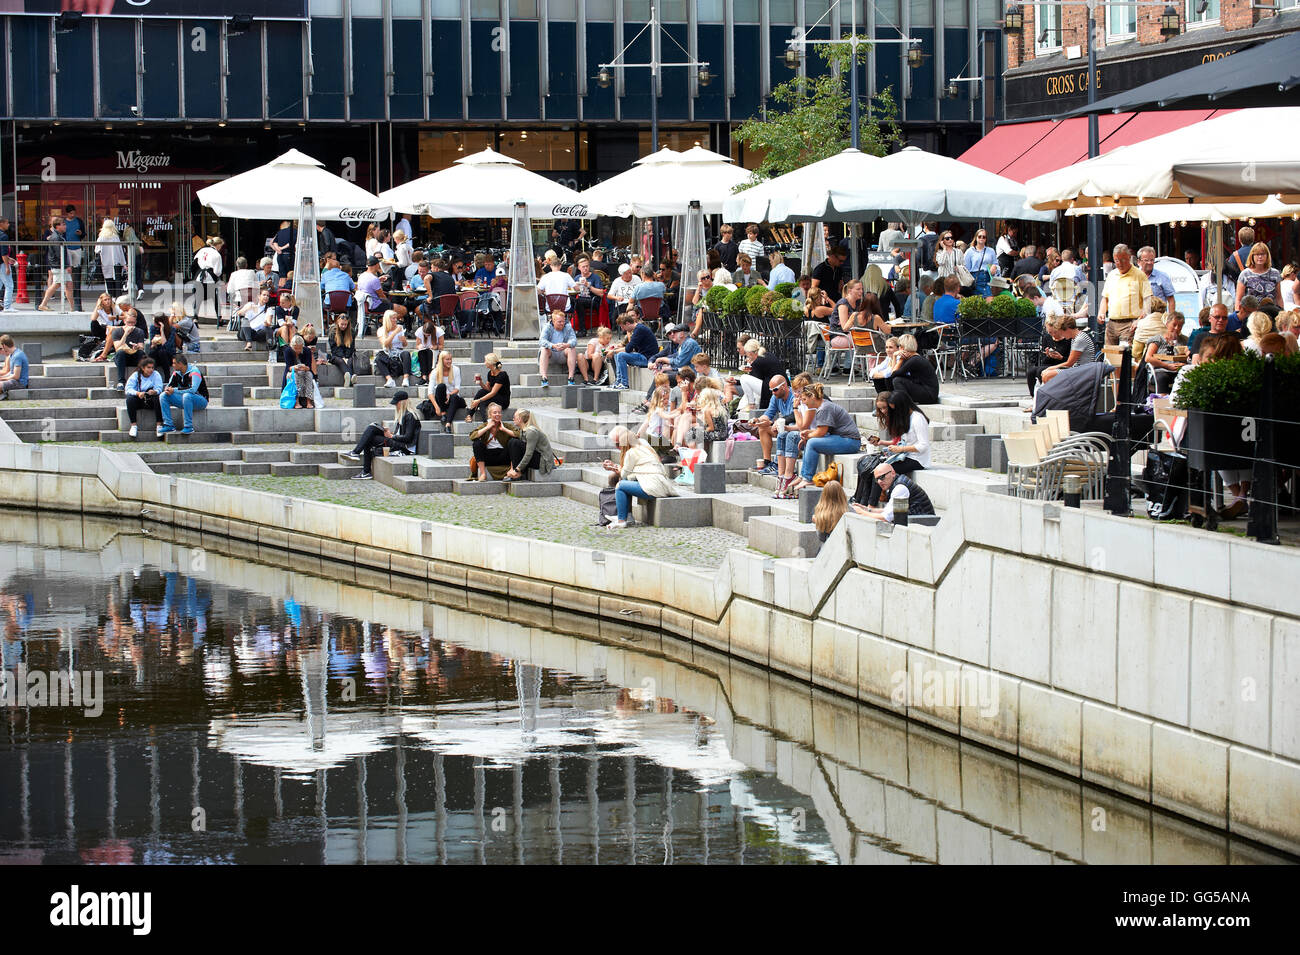 People relaxing at canal, Aaboluvarden, Aarhus, Denmark - Stock Image